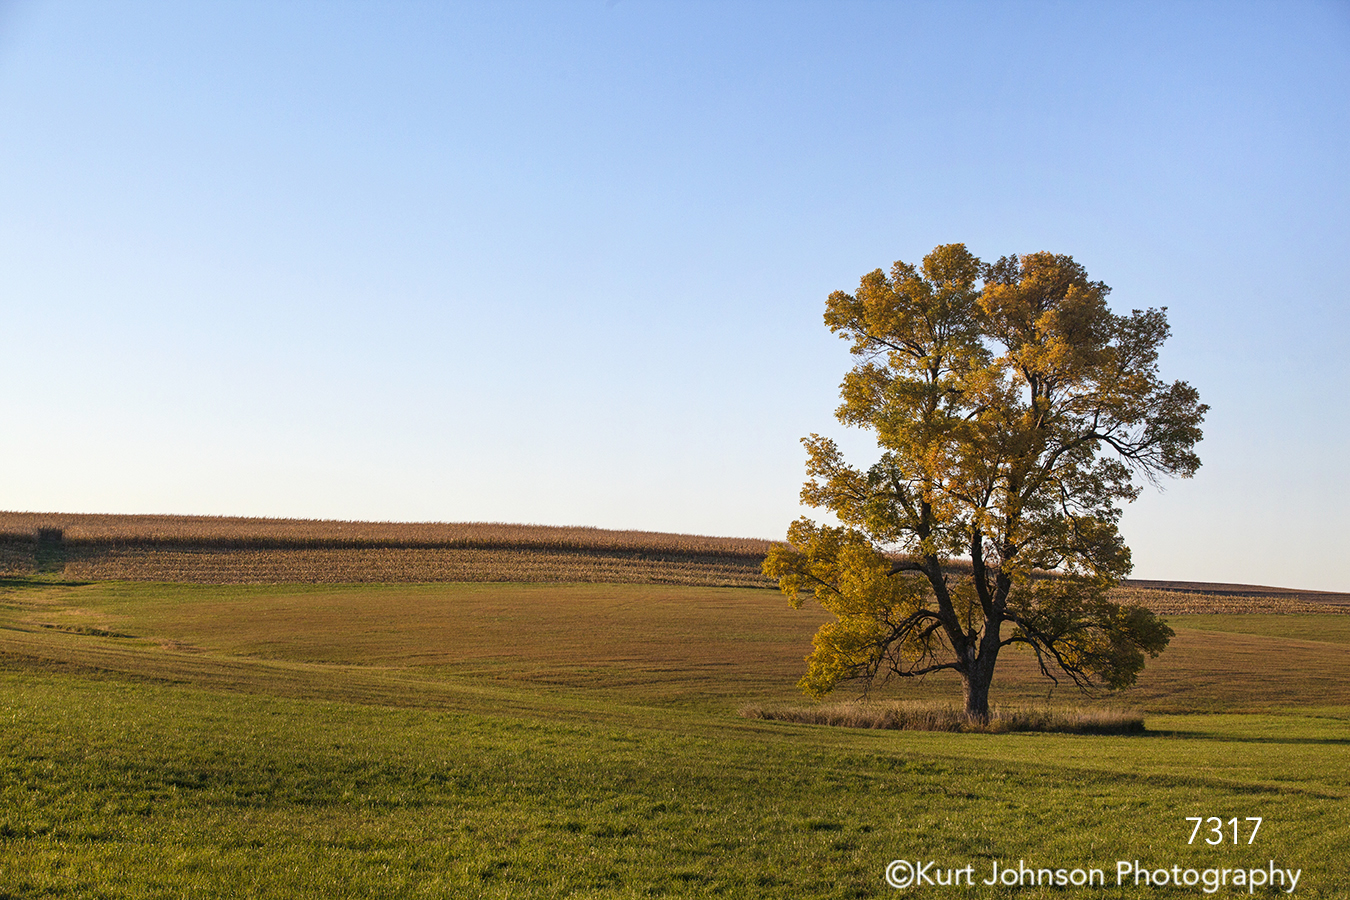 midwest tree field country landscape blue sky